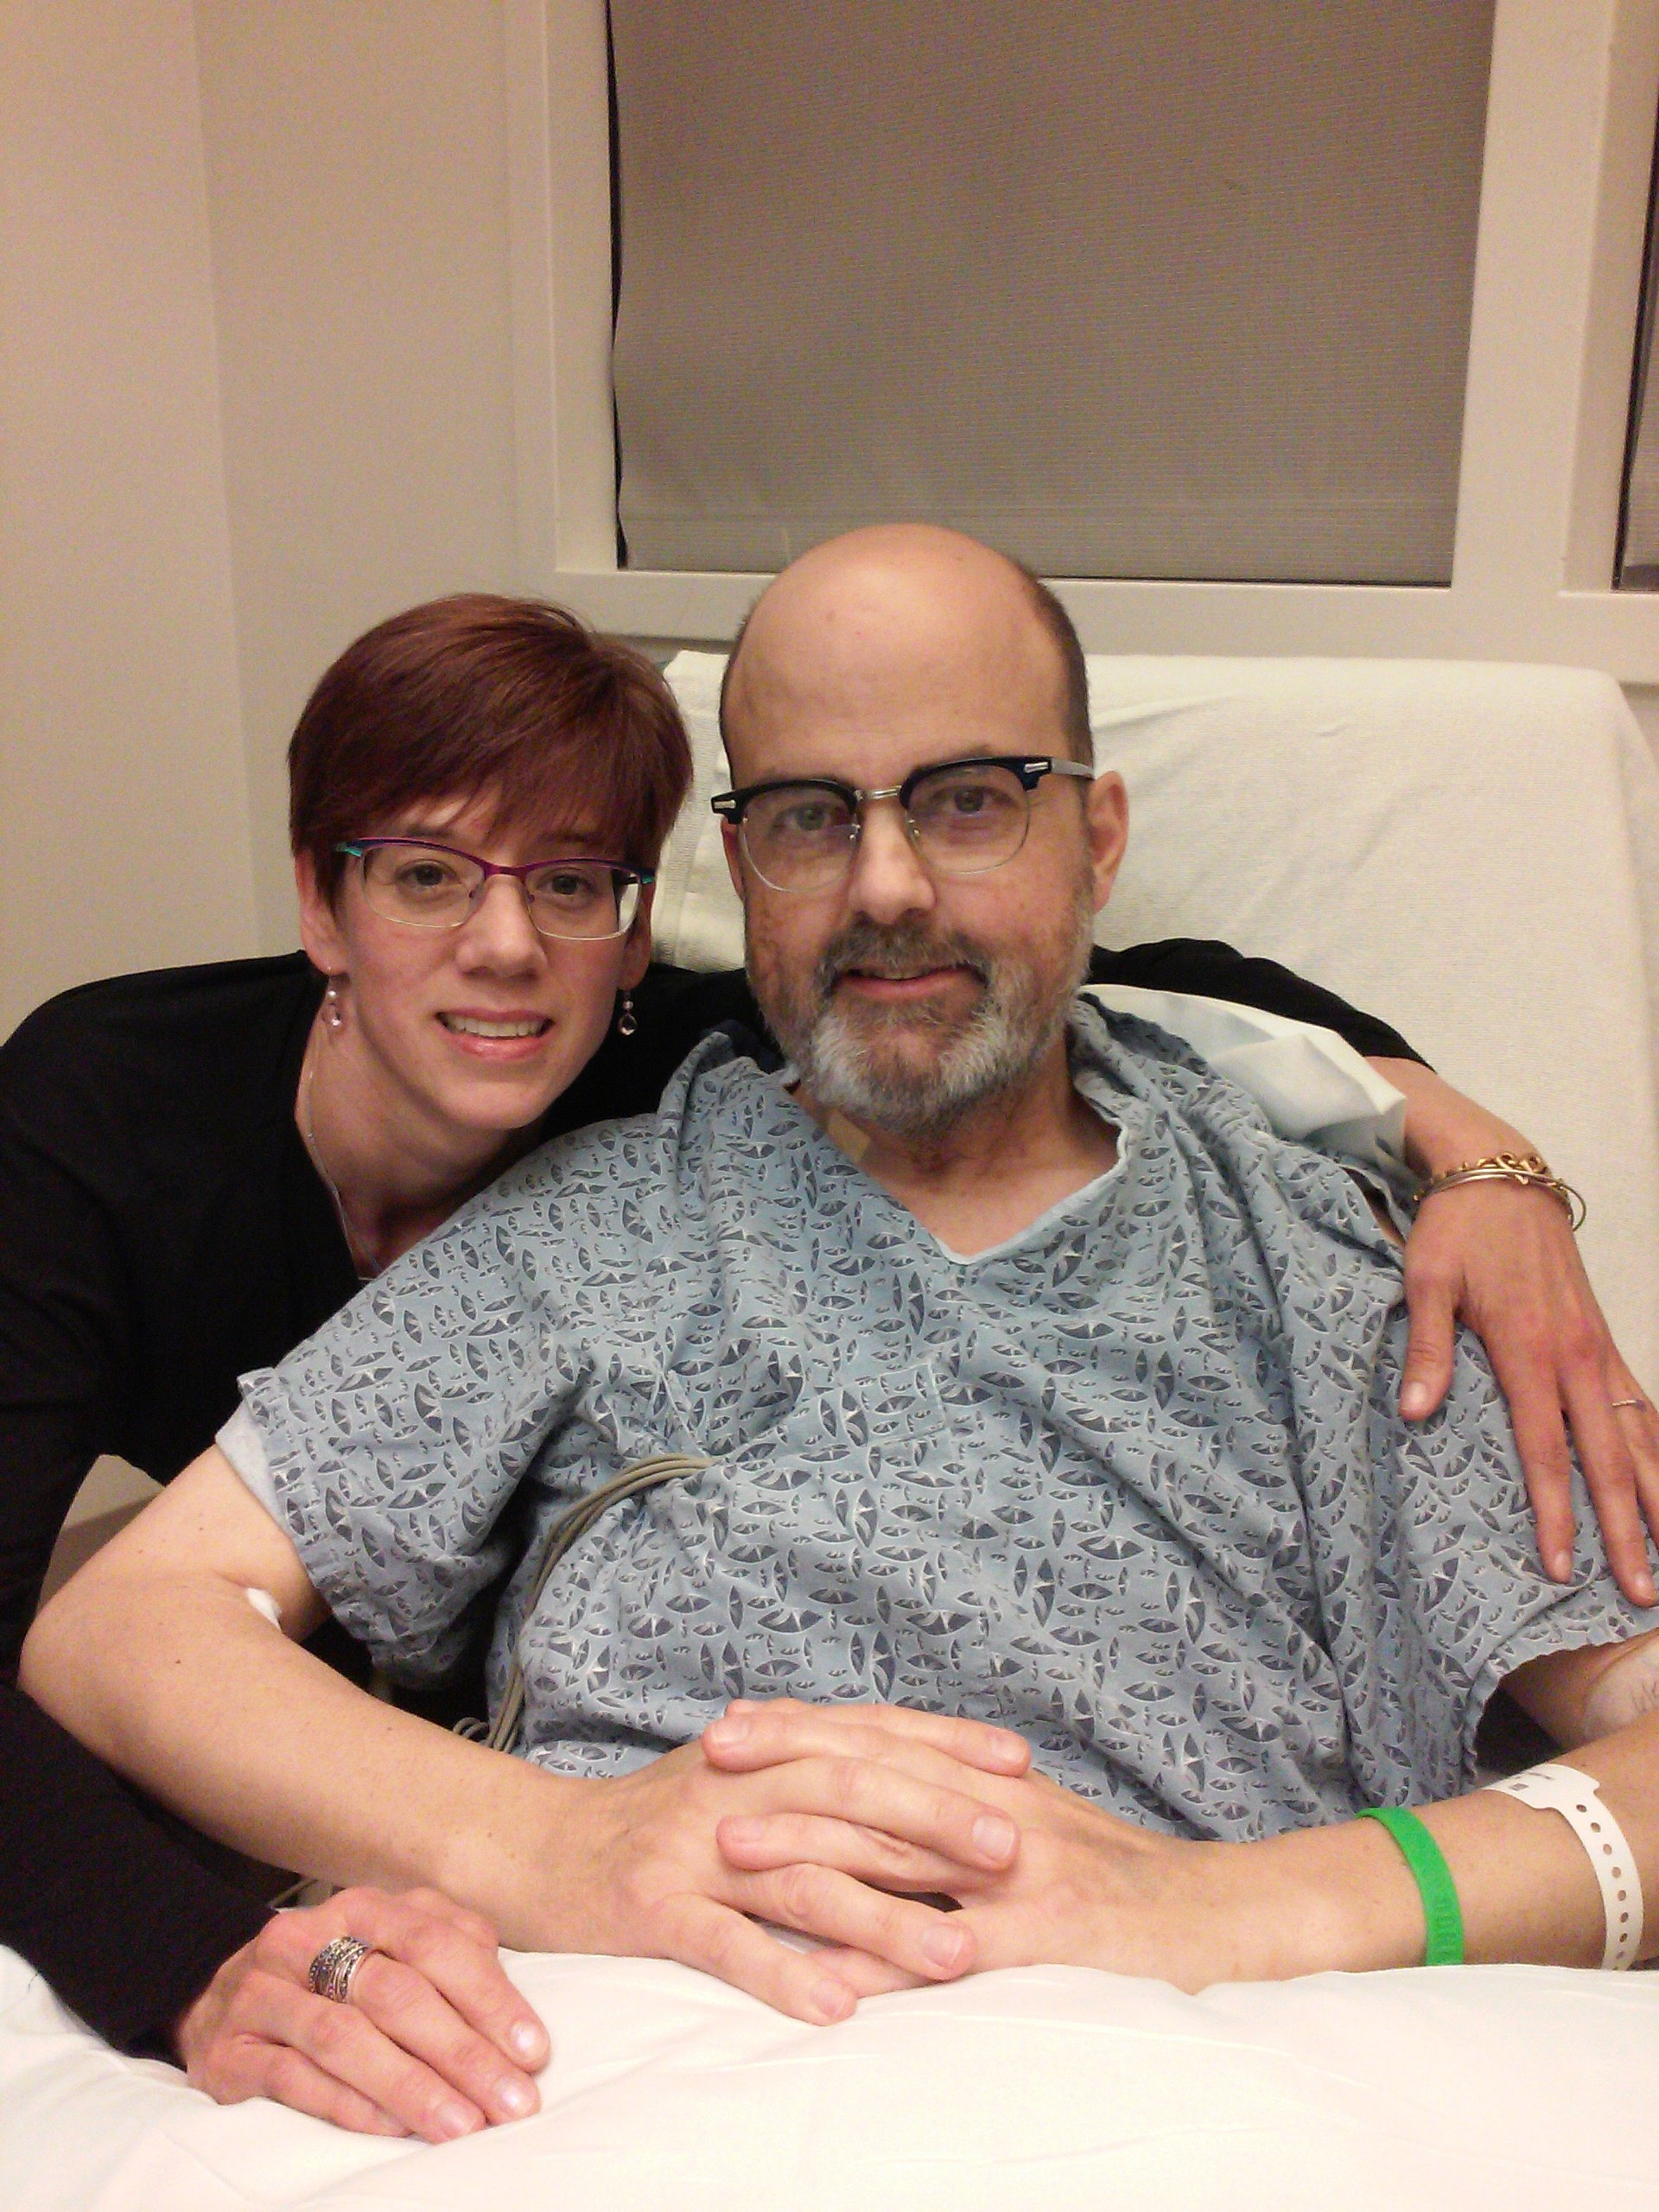 Sherry Brinser-Day visits with her husband, Tim, after his May 31 heart transplant. The Town of Tonawanda police officer's heart had been ravaged by an autoimmune disease.